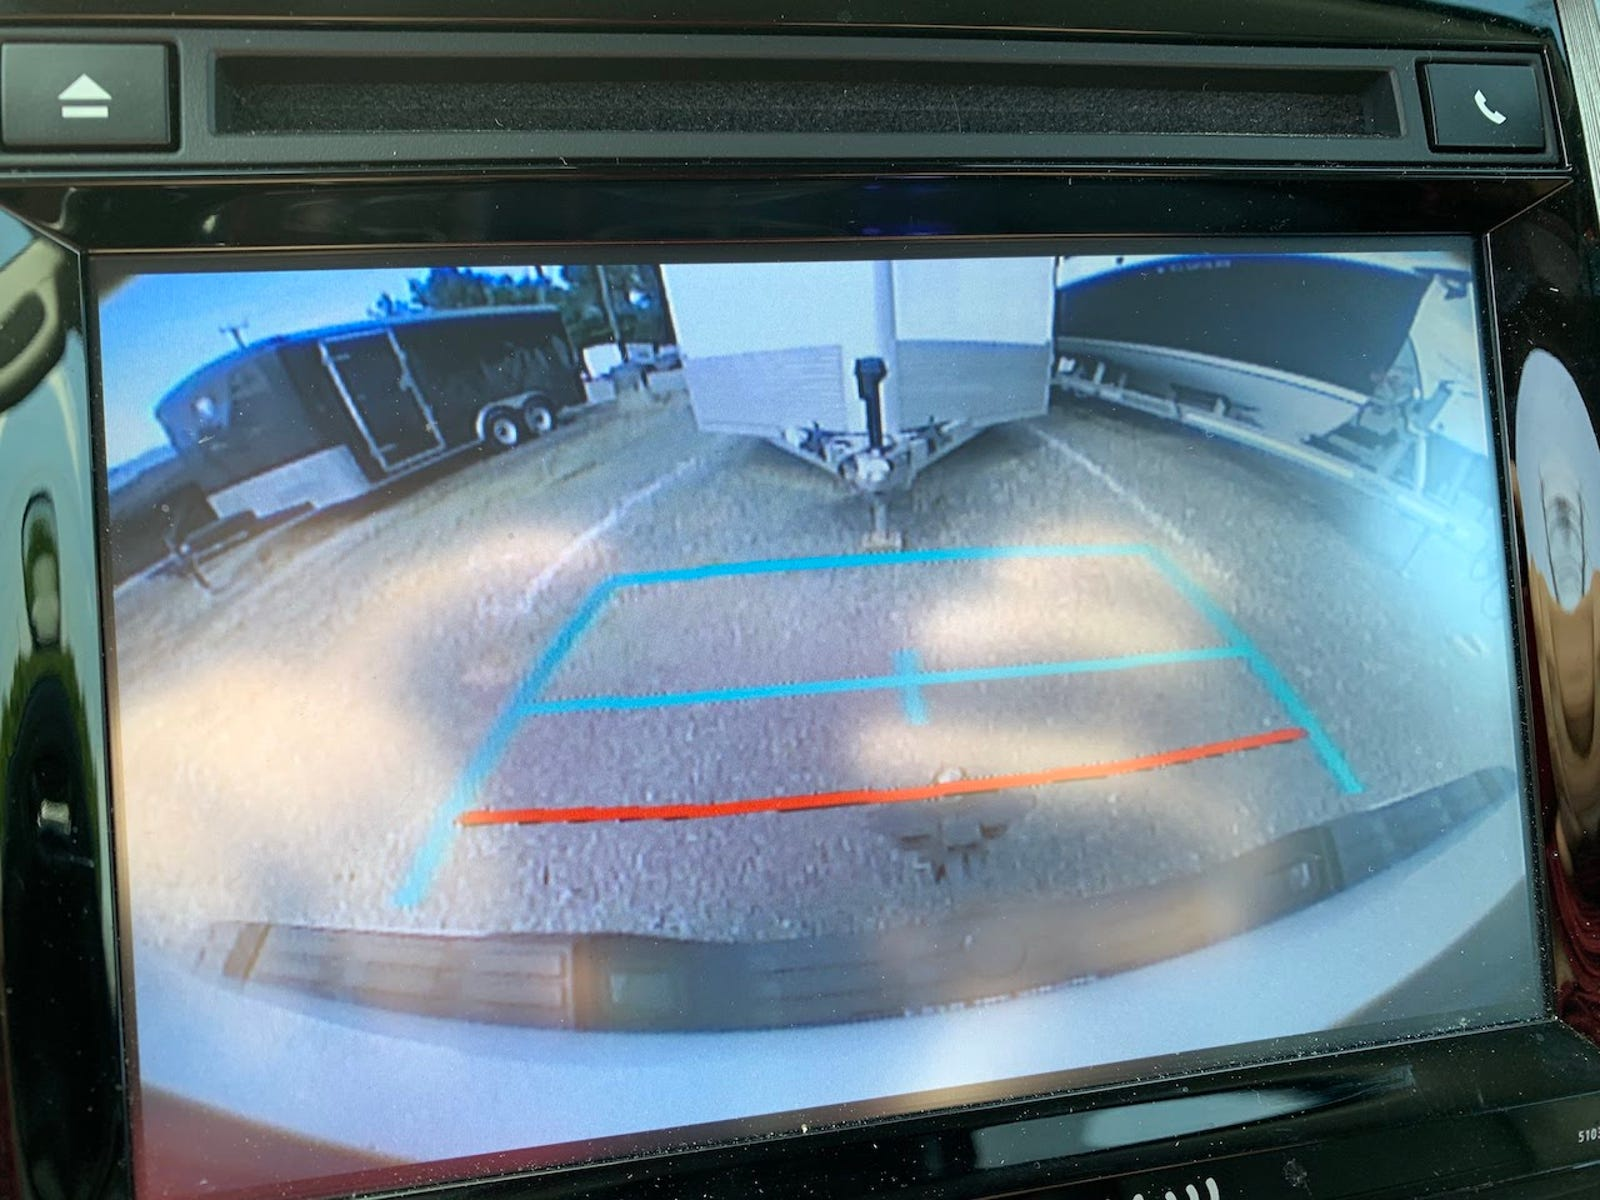 Backup camera is low-res on a slightly-small screen